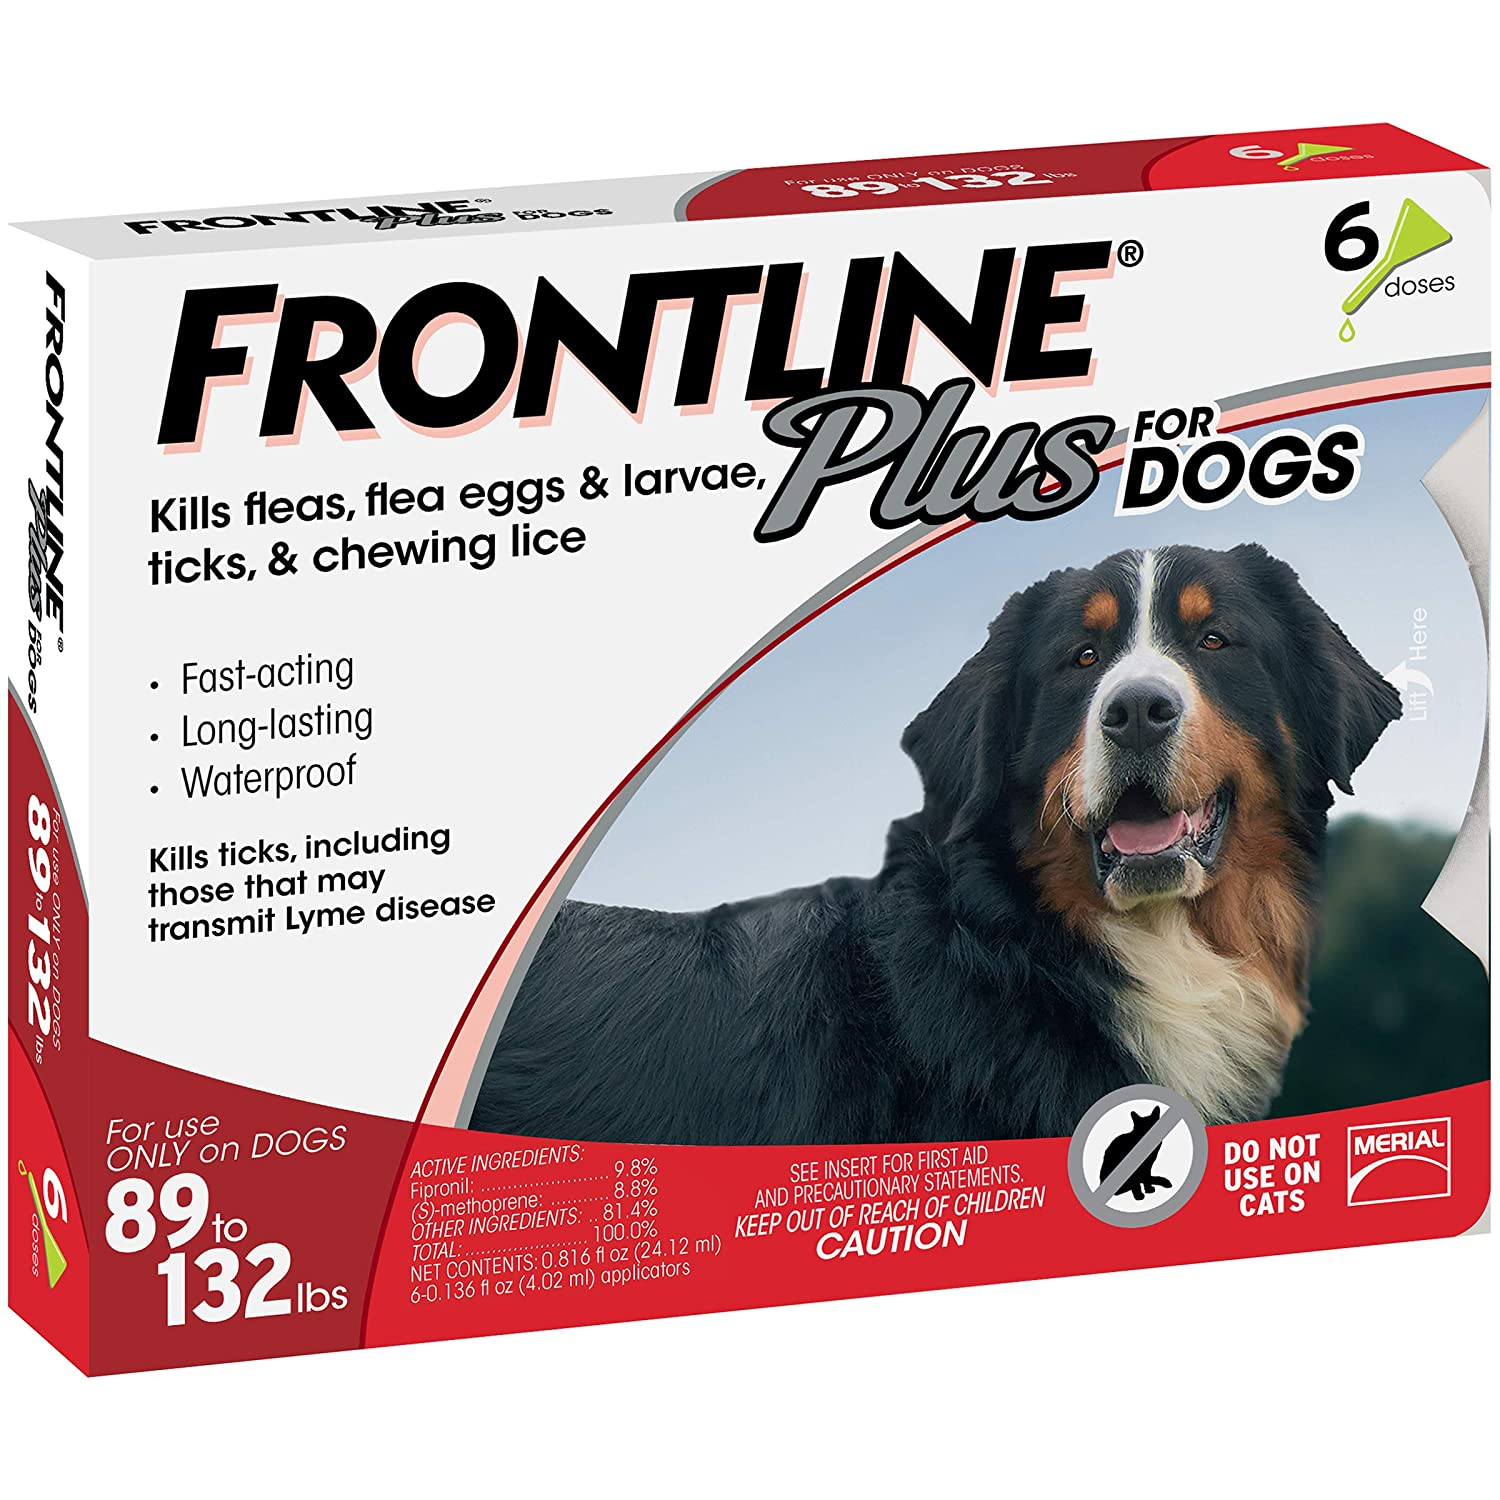 Frontline Plus for Extra Large Dogs (89 to 132 pounds) Flea and Tick  Treatment, 6 Doses